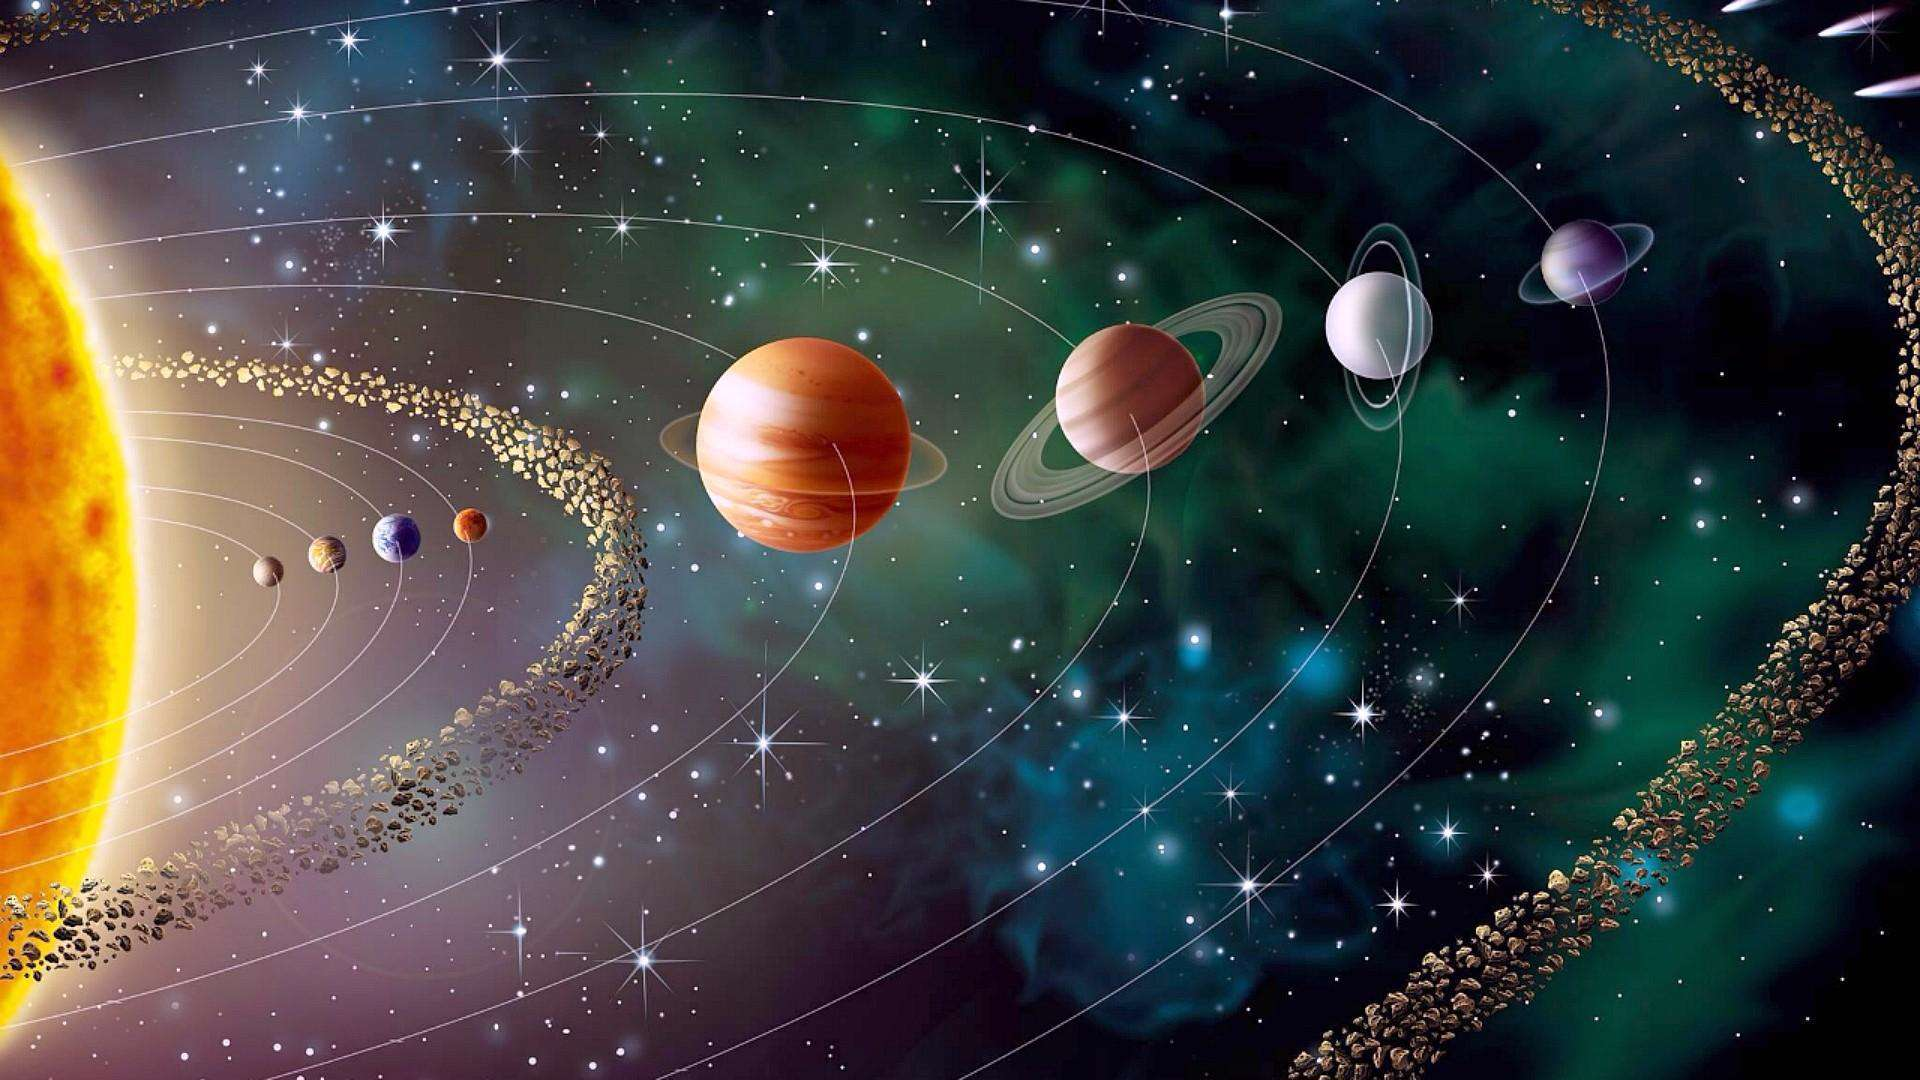 artists concept our solar system solar system - HD1920×1080